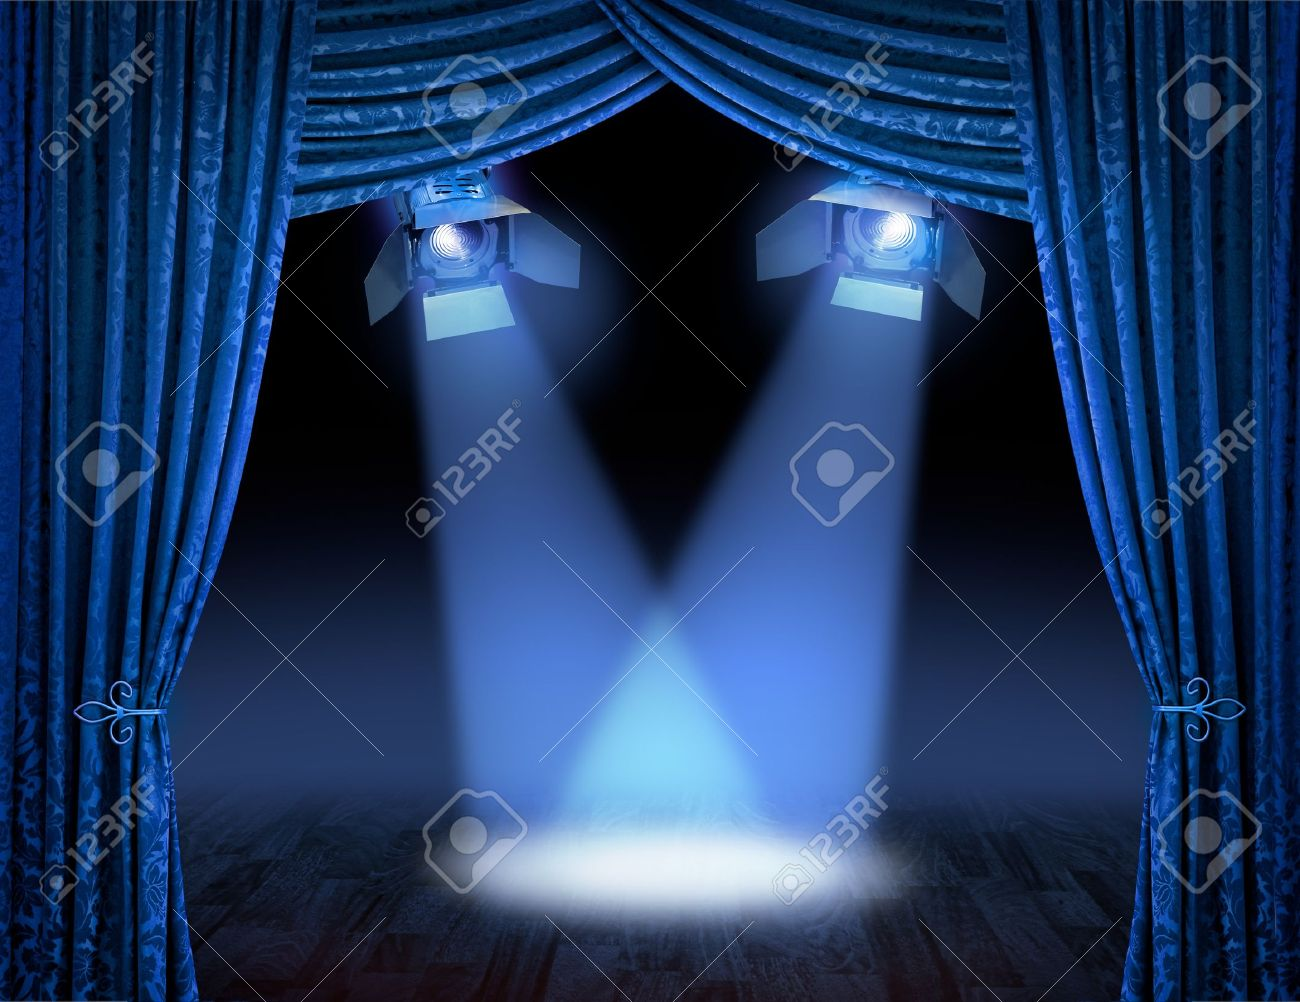 Bl blue stage curtains background - Bl Blue Stage Curtains Background Blue Stage Curtains Download